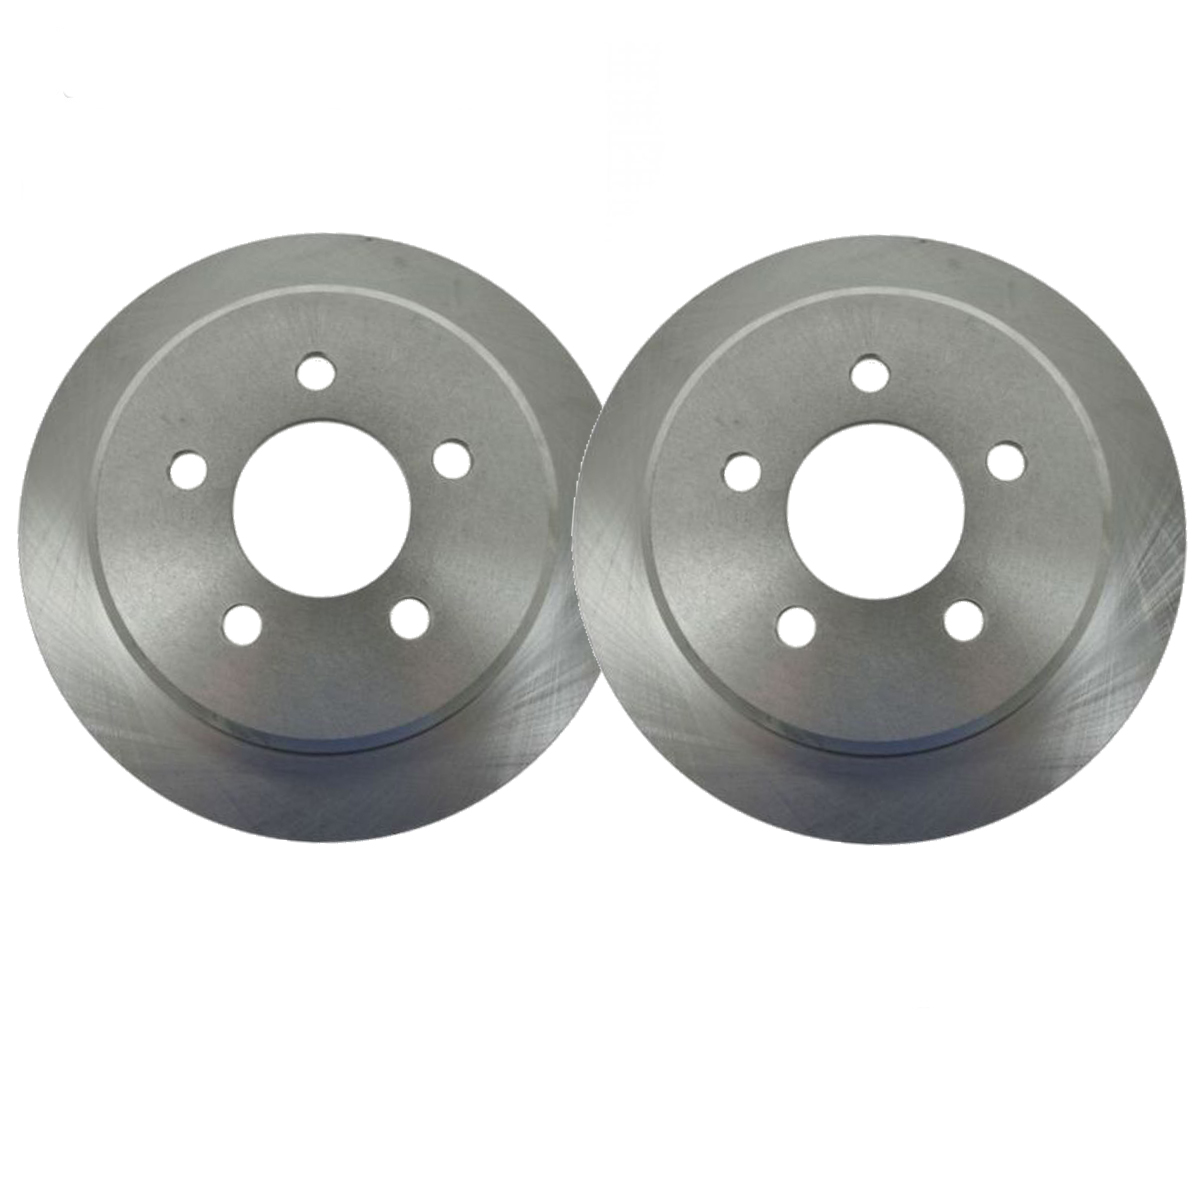 2016 For Ford Escape Front Disc Brake Rotors and Ceramic Pads 300mm Rotors